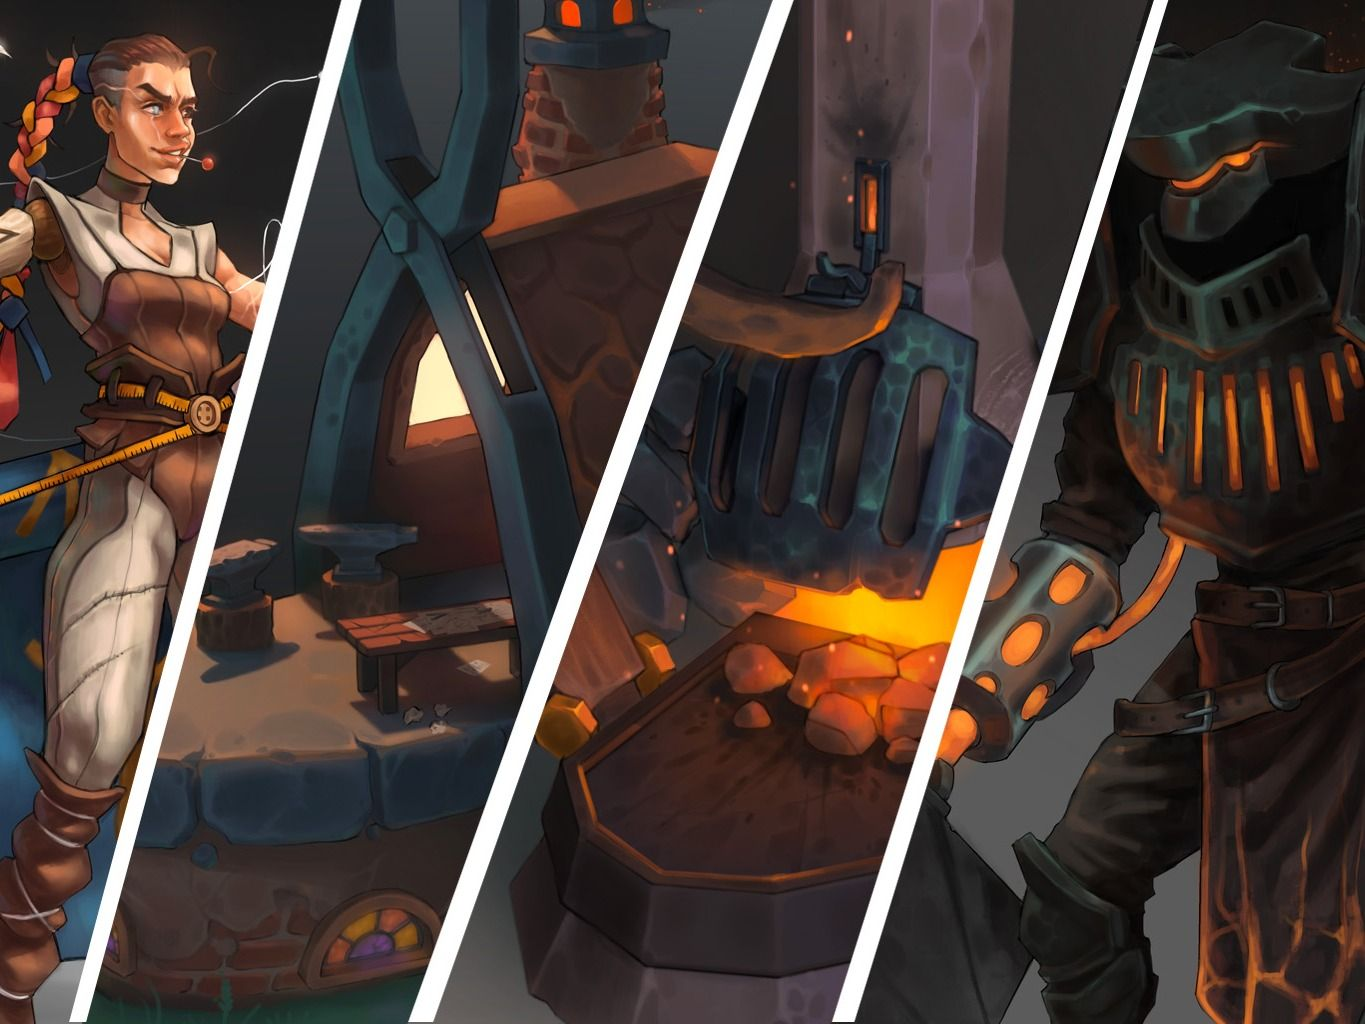 The Blacksmith and Tailor